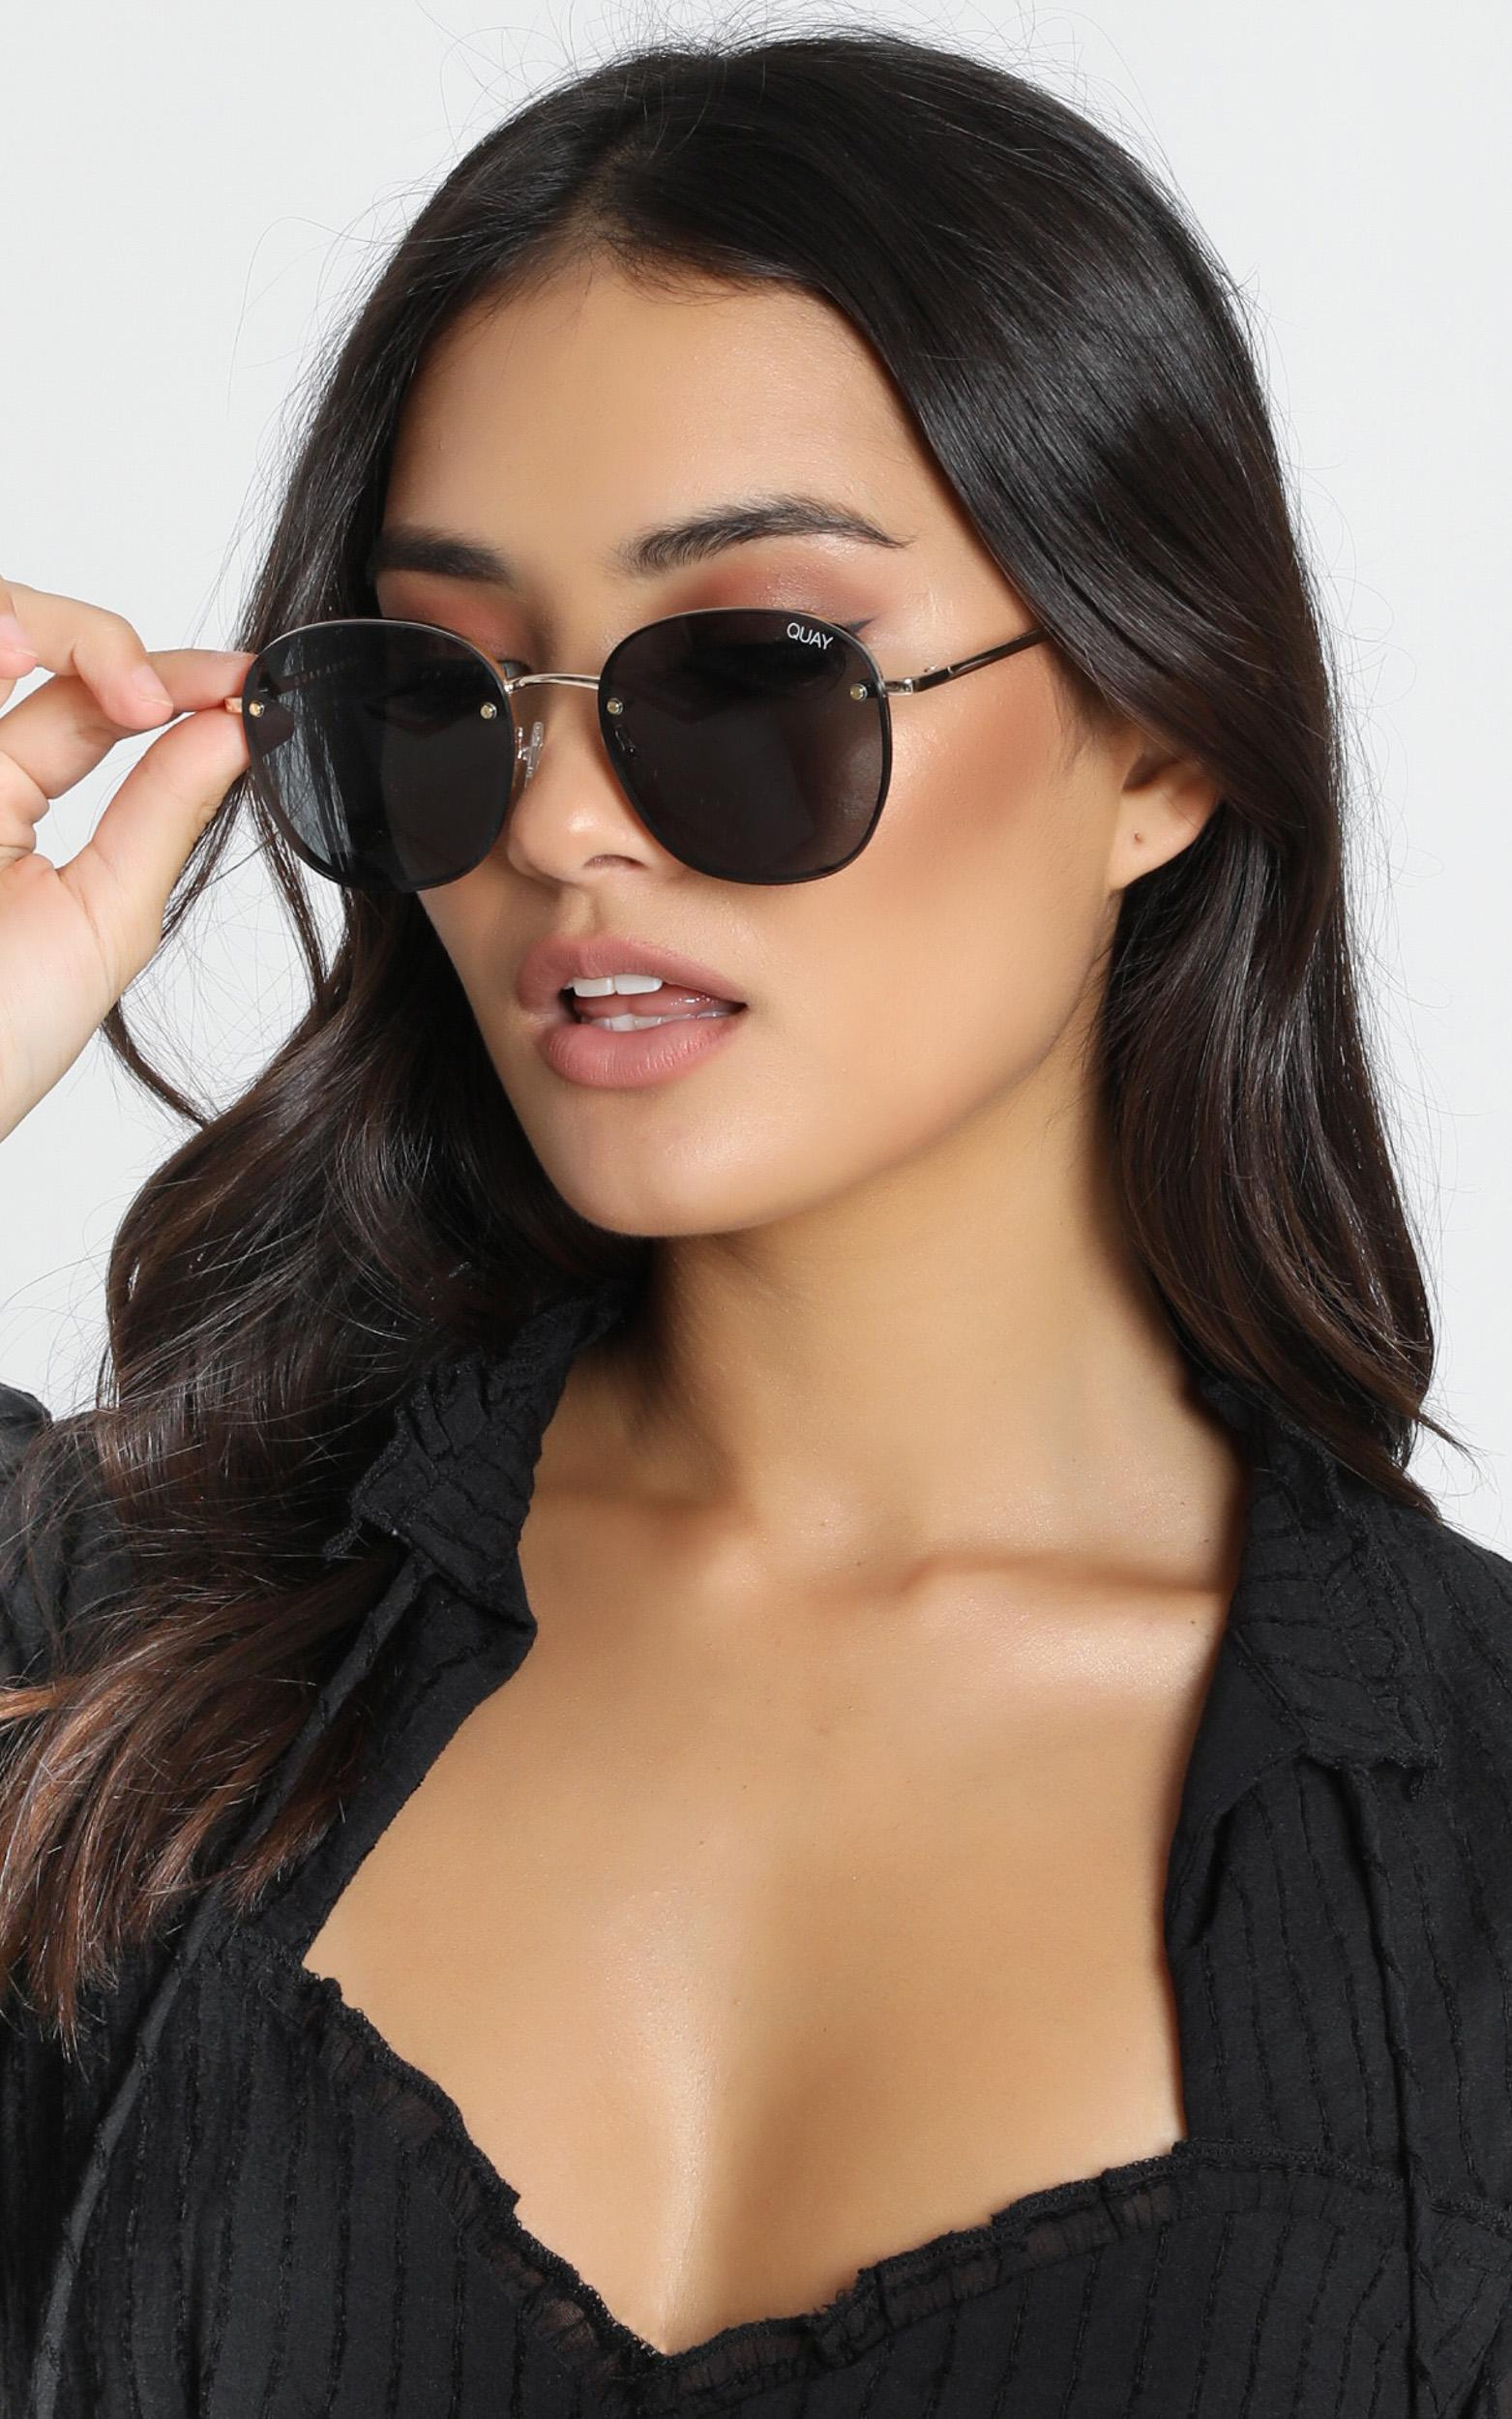 Quay - Jezabell Rimless Sunglasses In Gold And Smoke Lens, , hi-res image number null